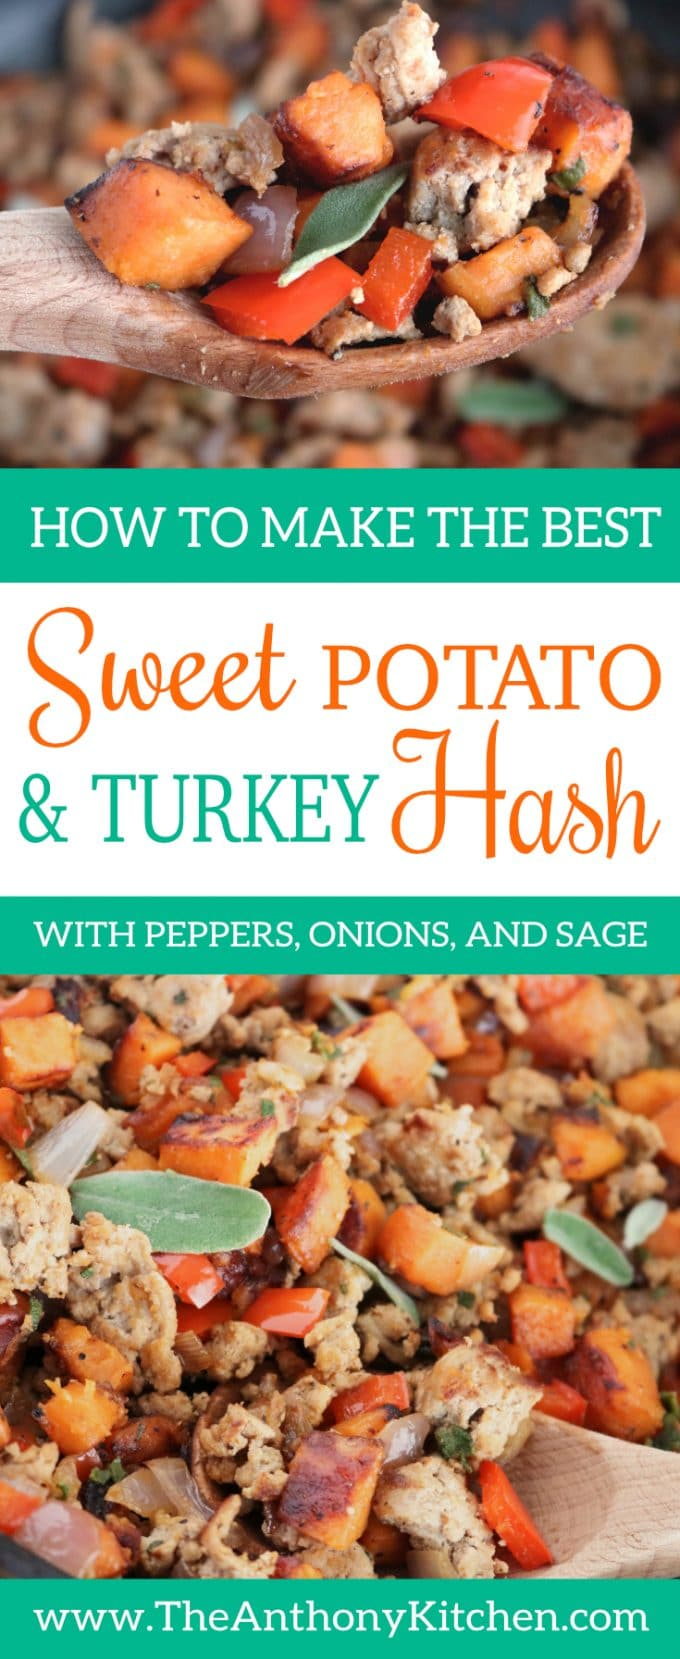 HEALTHY SWEET POTATO HASH WITH TURKEY, PEPPERS, ONIONS, AND SAGE